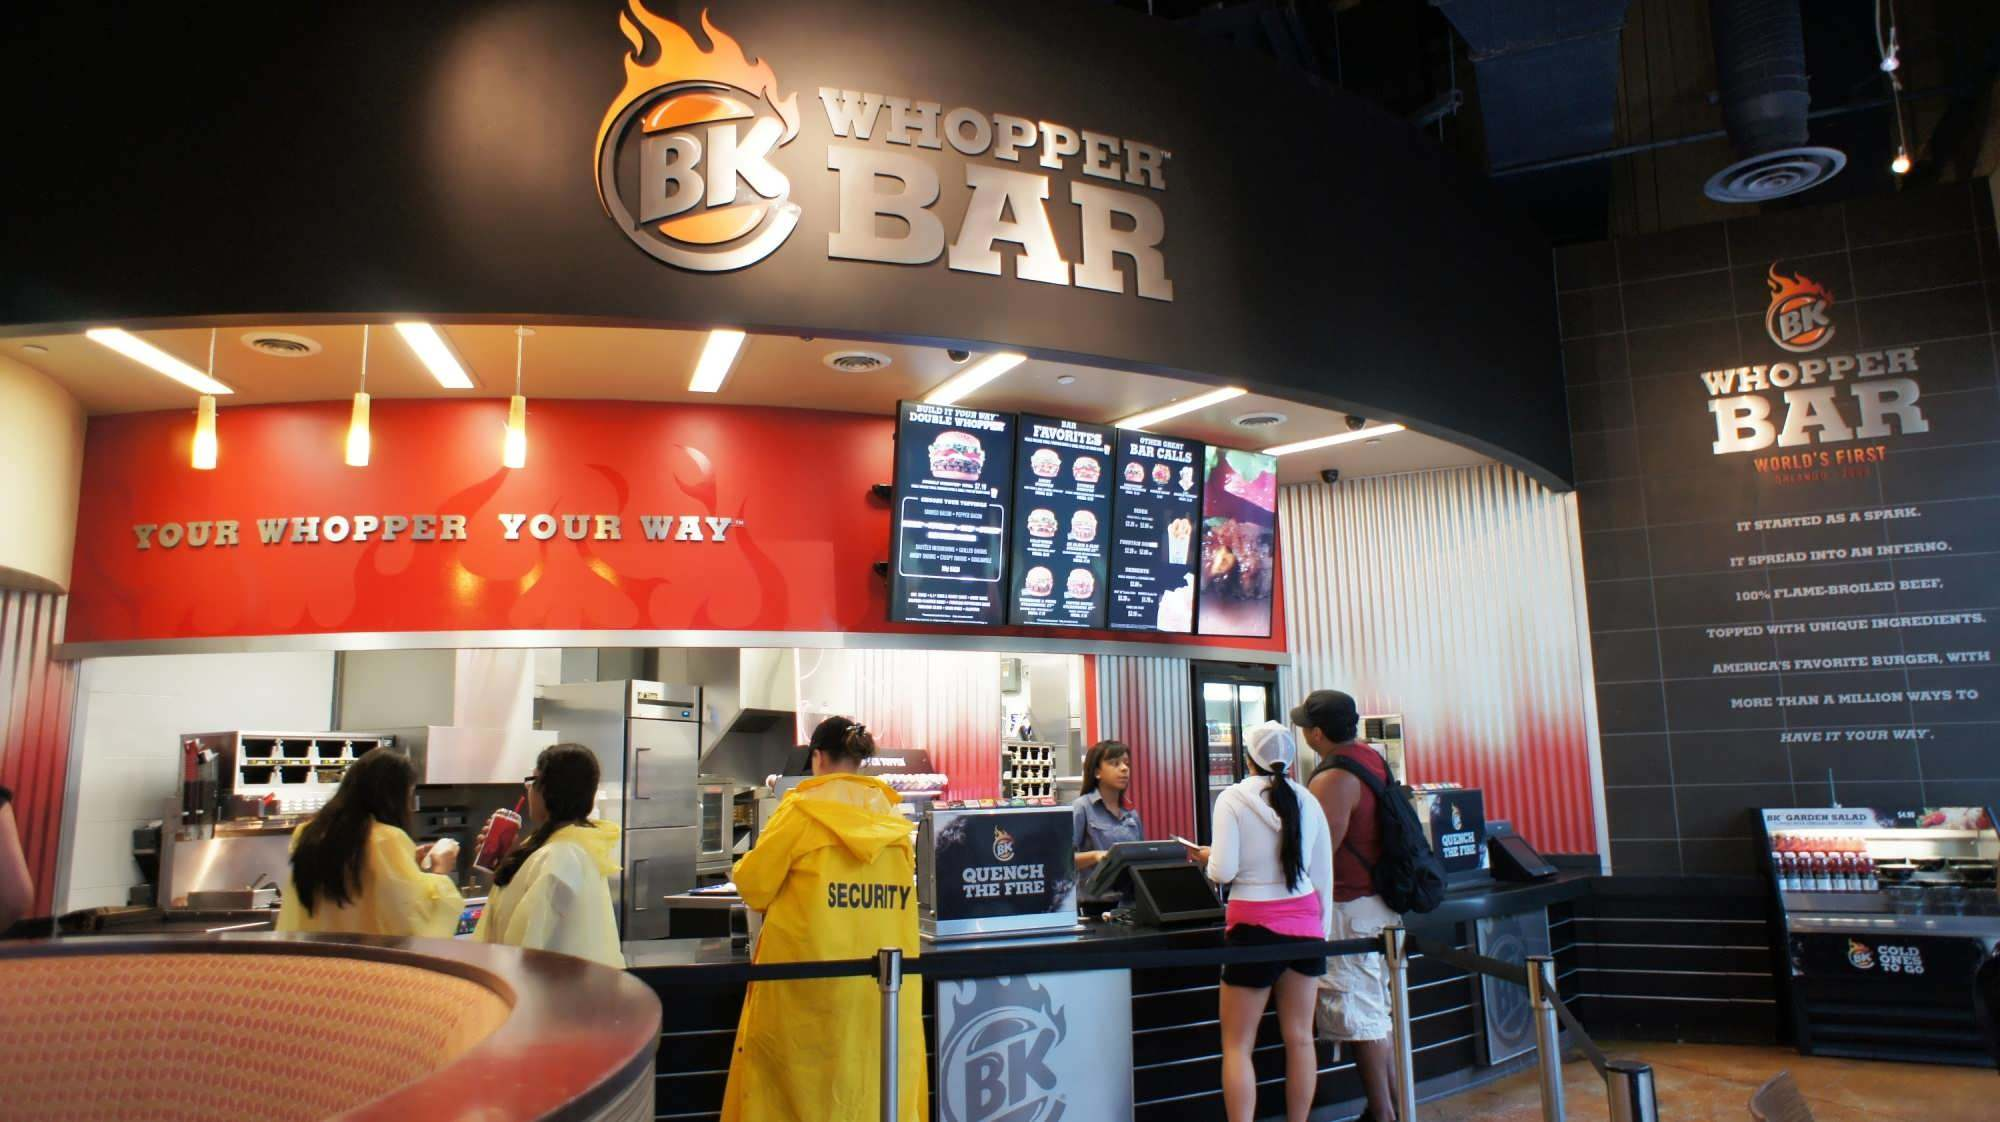 The world's first Burger King Whopper Bar